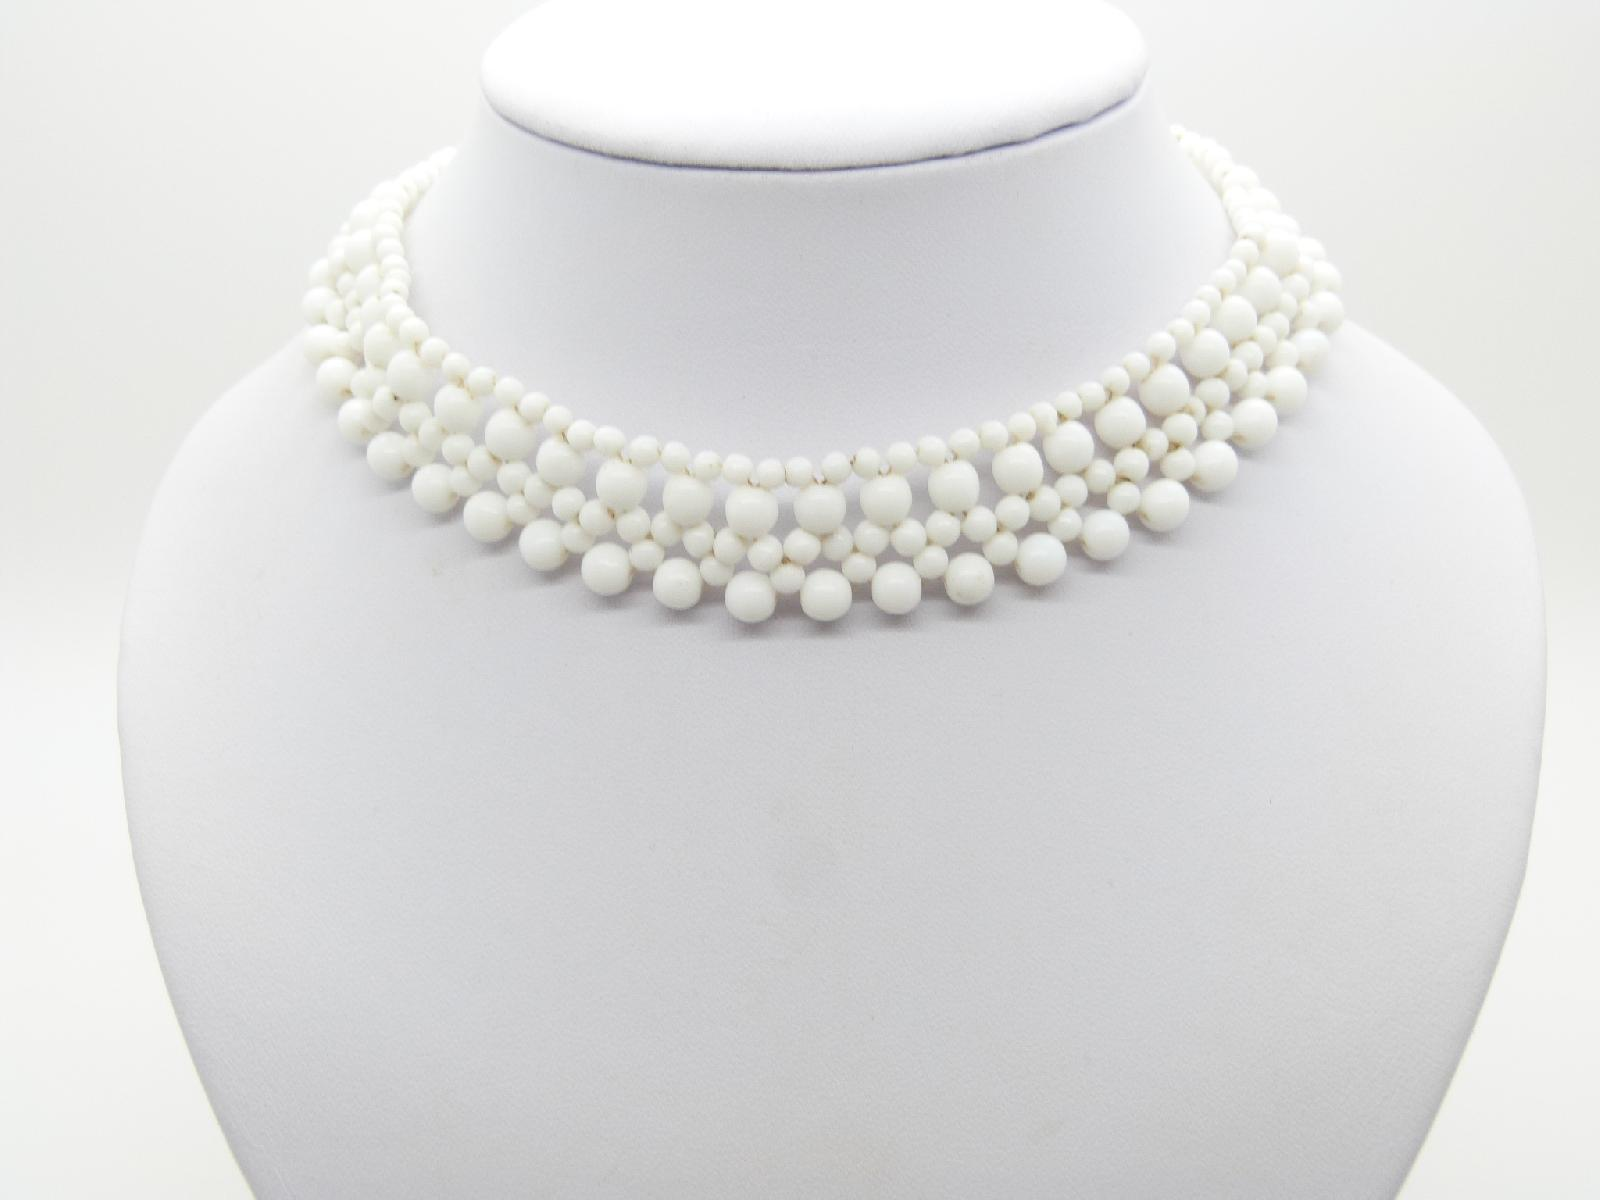 Vintage 50s Pretty and Feminine White Glass Bead Choker Necklace